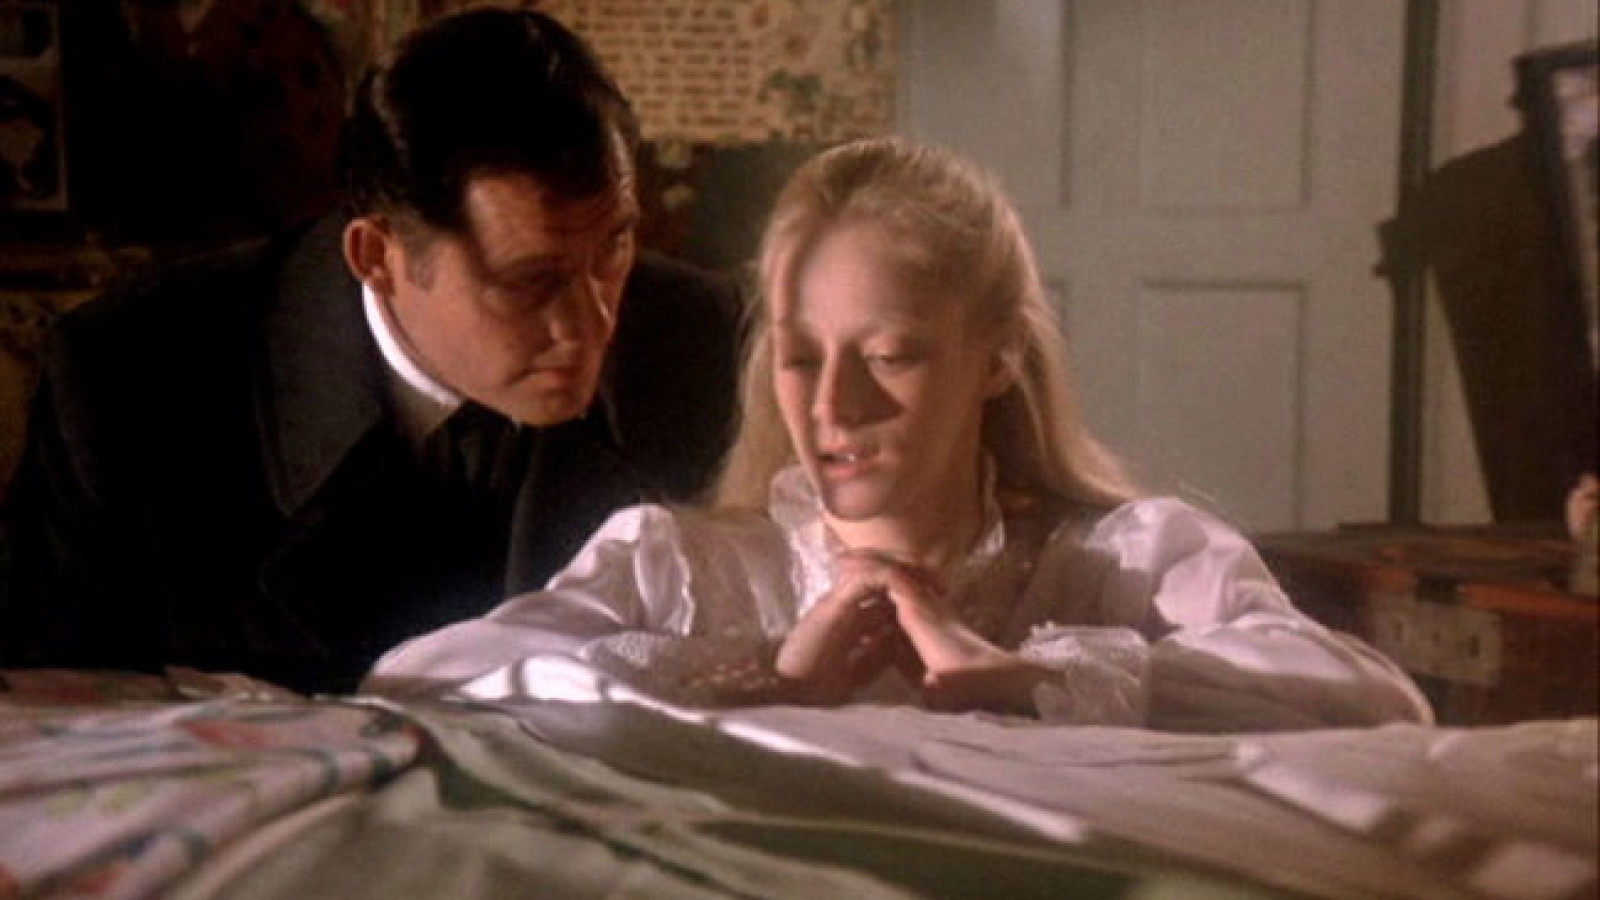 Father Robert Shaw and daughter Sondra Locke in A Reflection of Fear (1971)